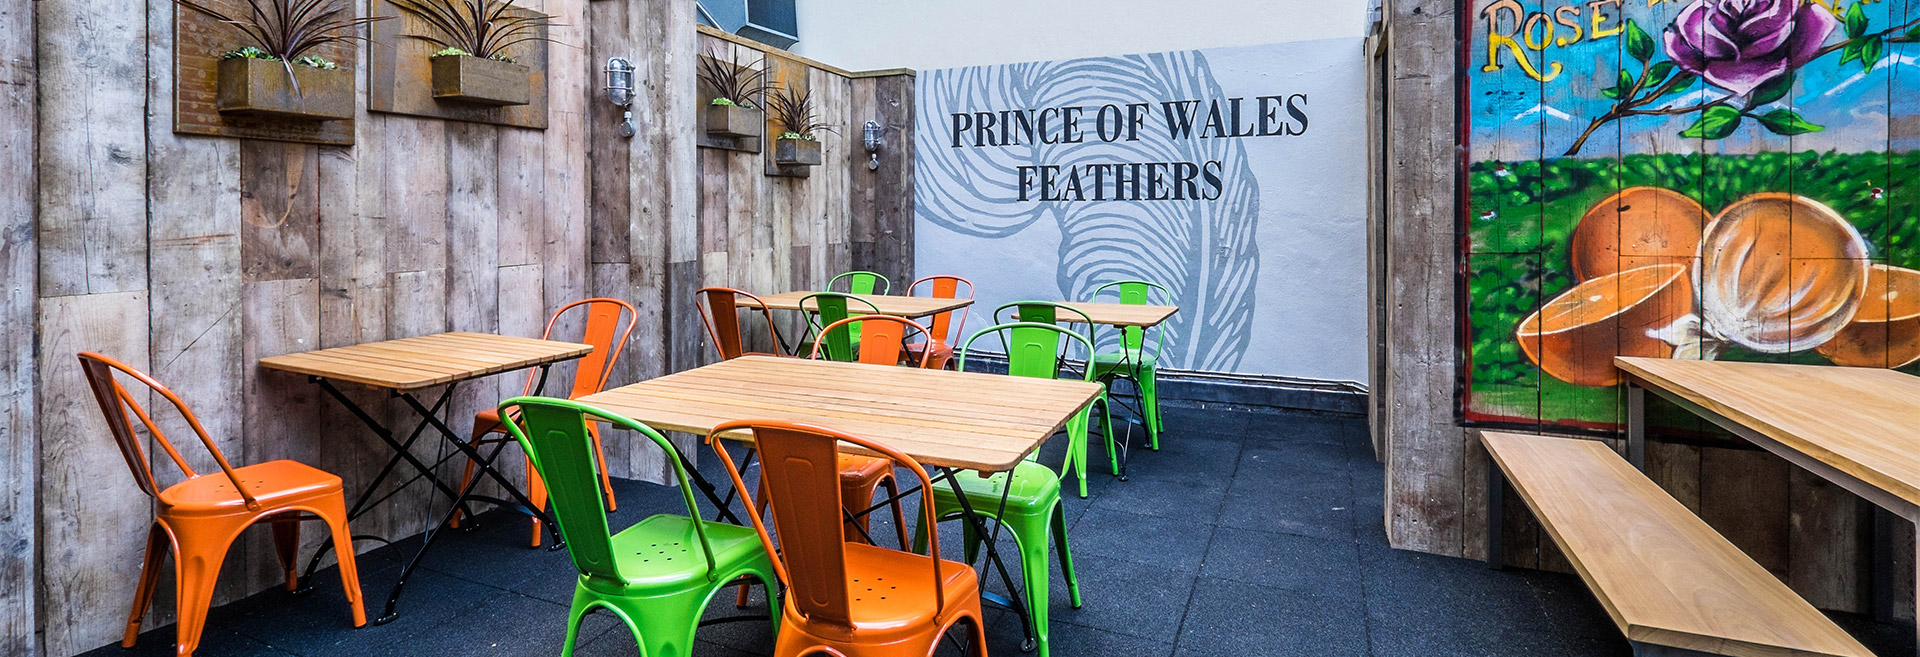 The Garden at The Prince of Wales Feathers